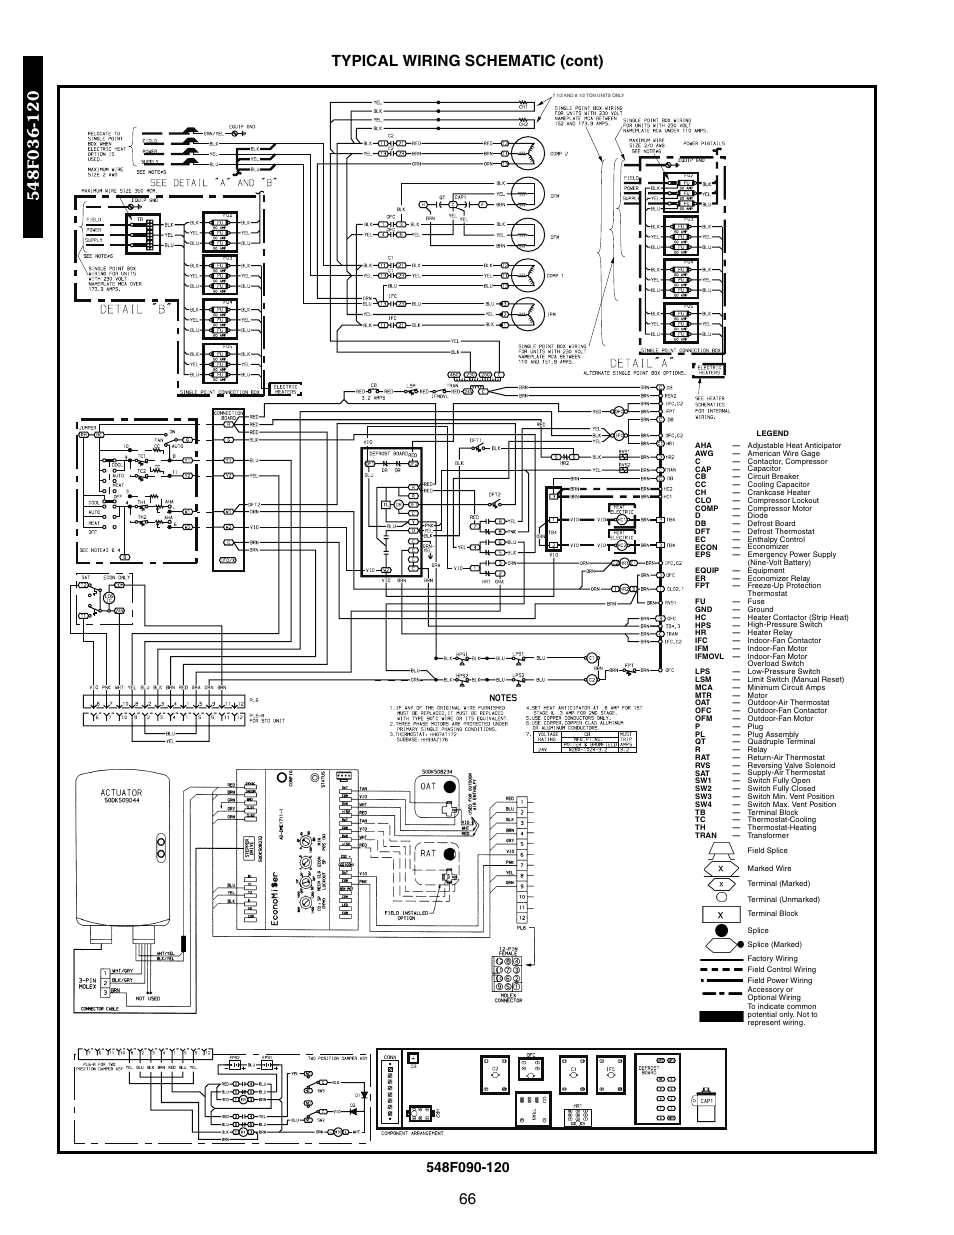 hight resolution of 66 typical wiring schematic cont bryant 548f user manual page 66 122